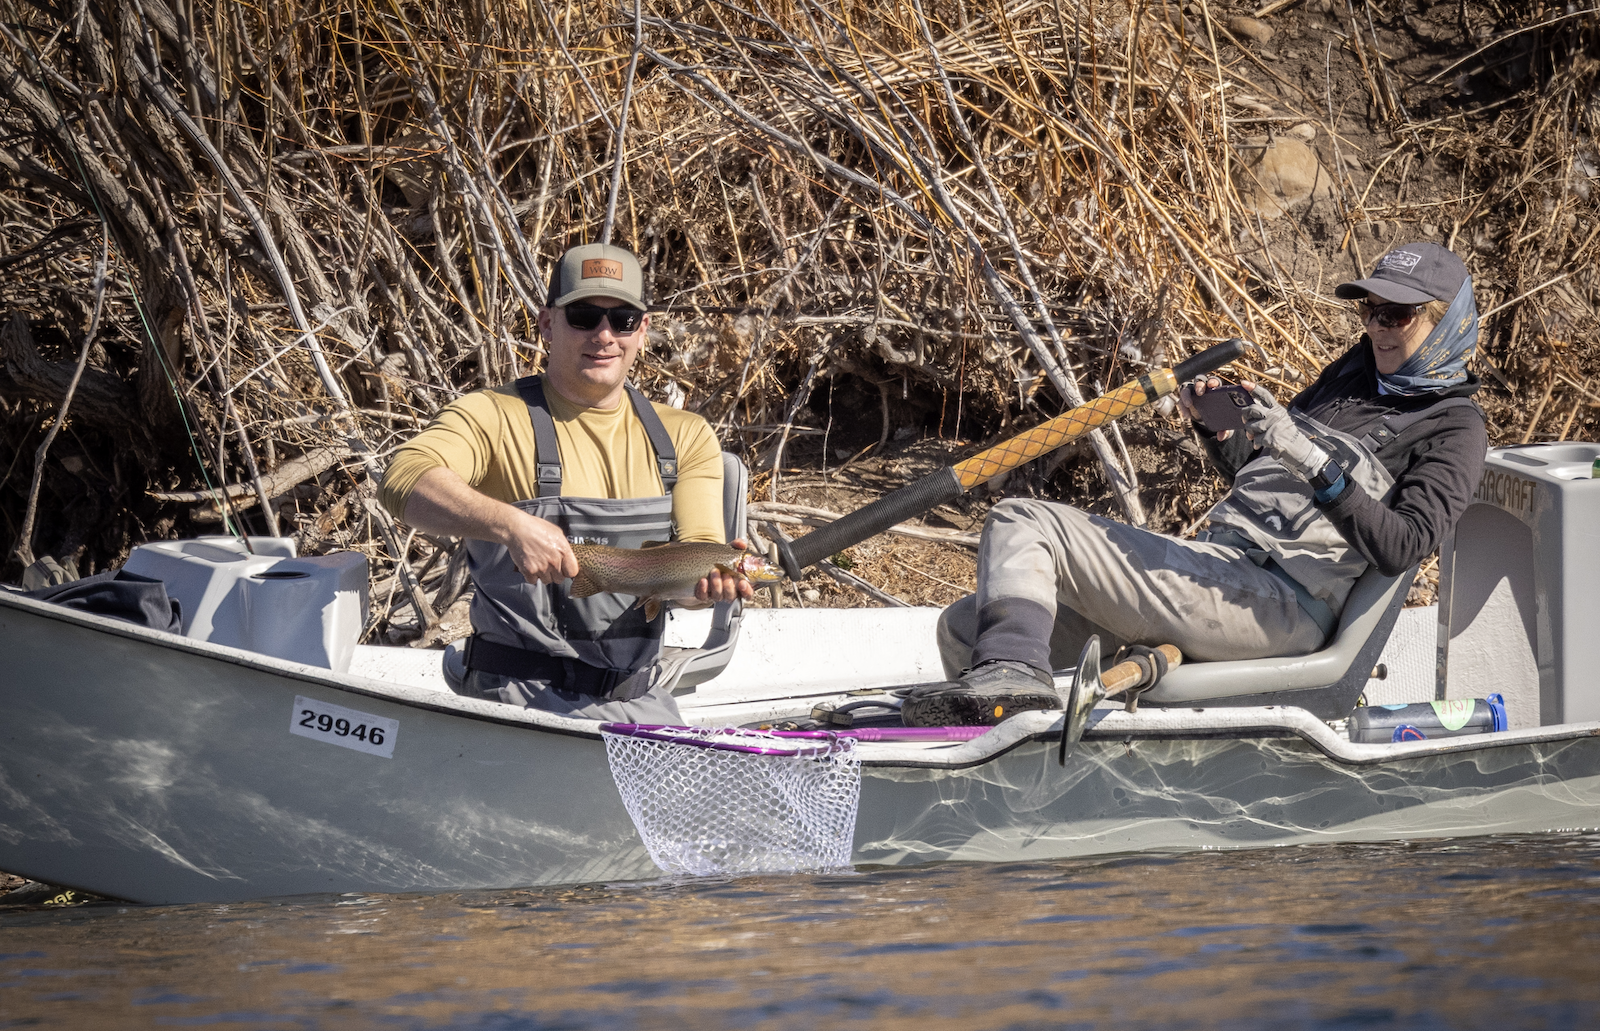 Watch a Warrior Fishing Experience in Paradise Valley